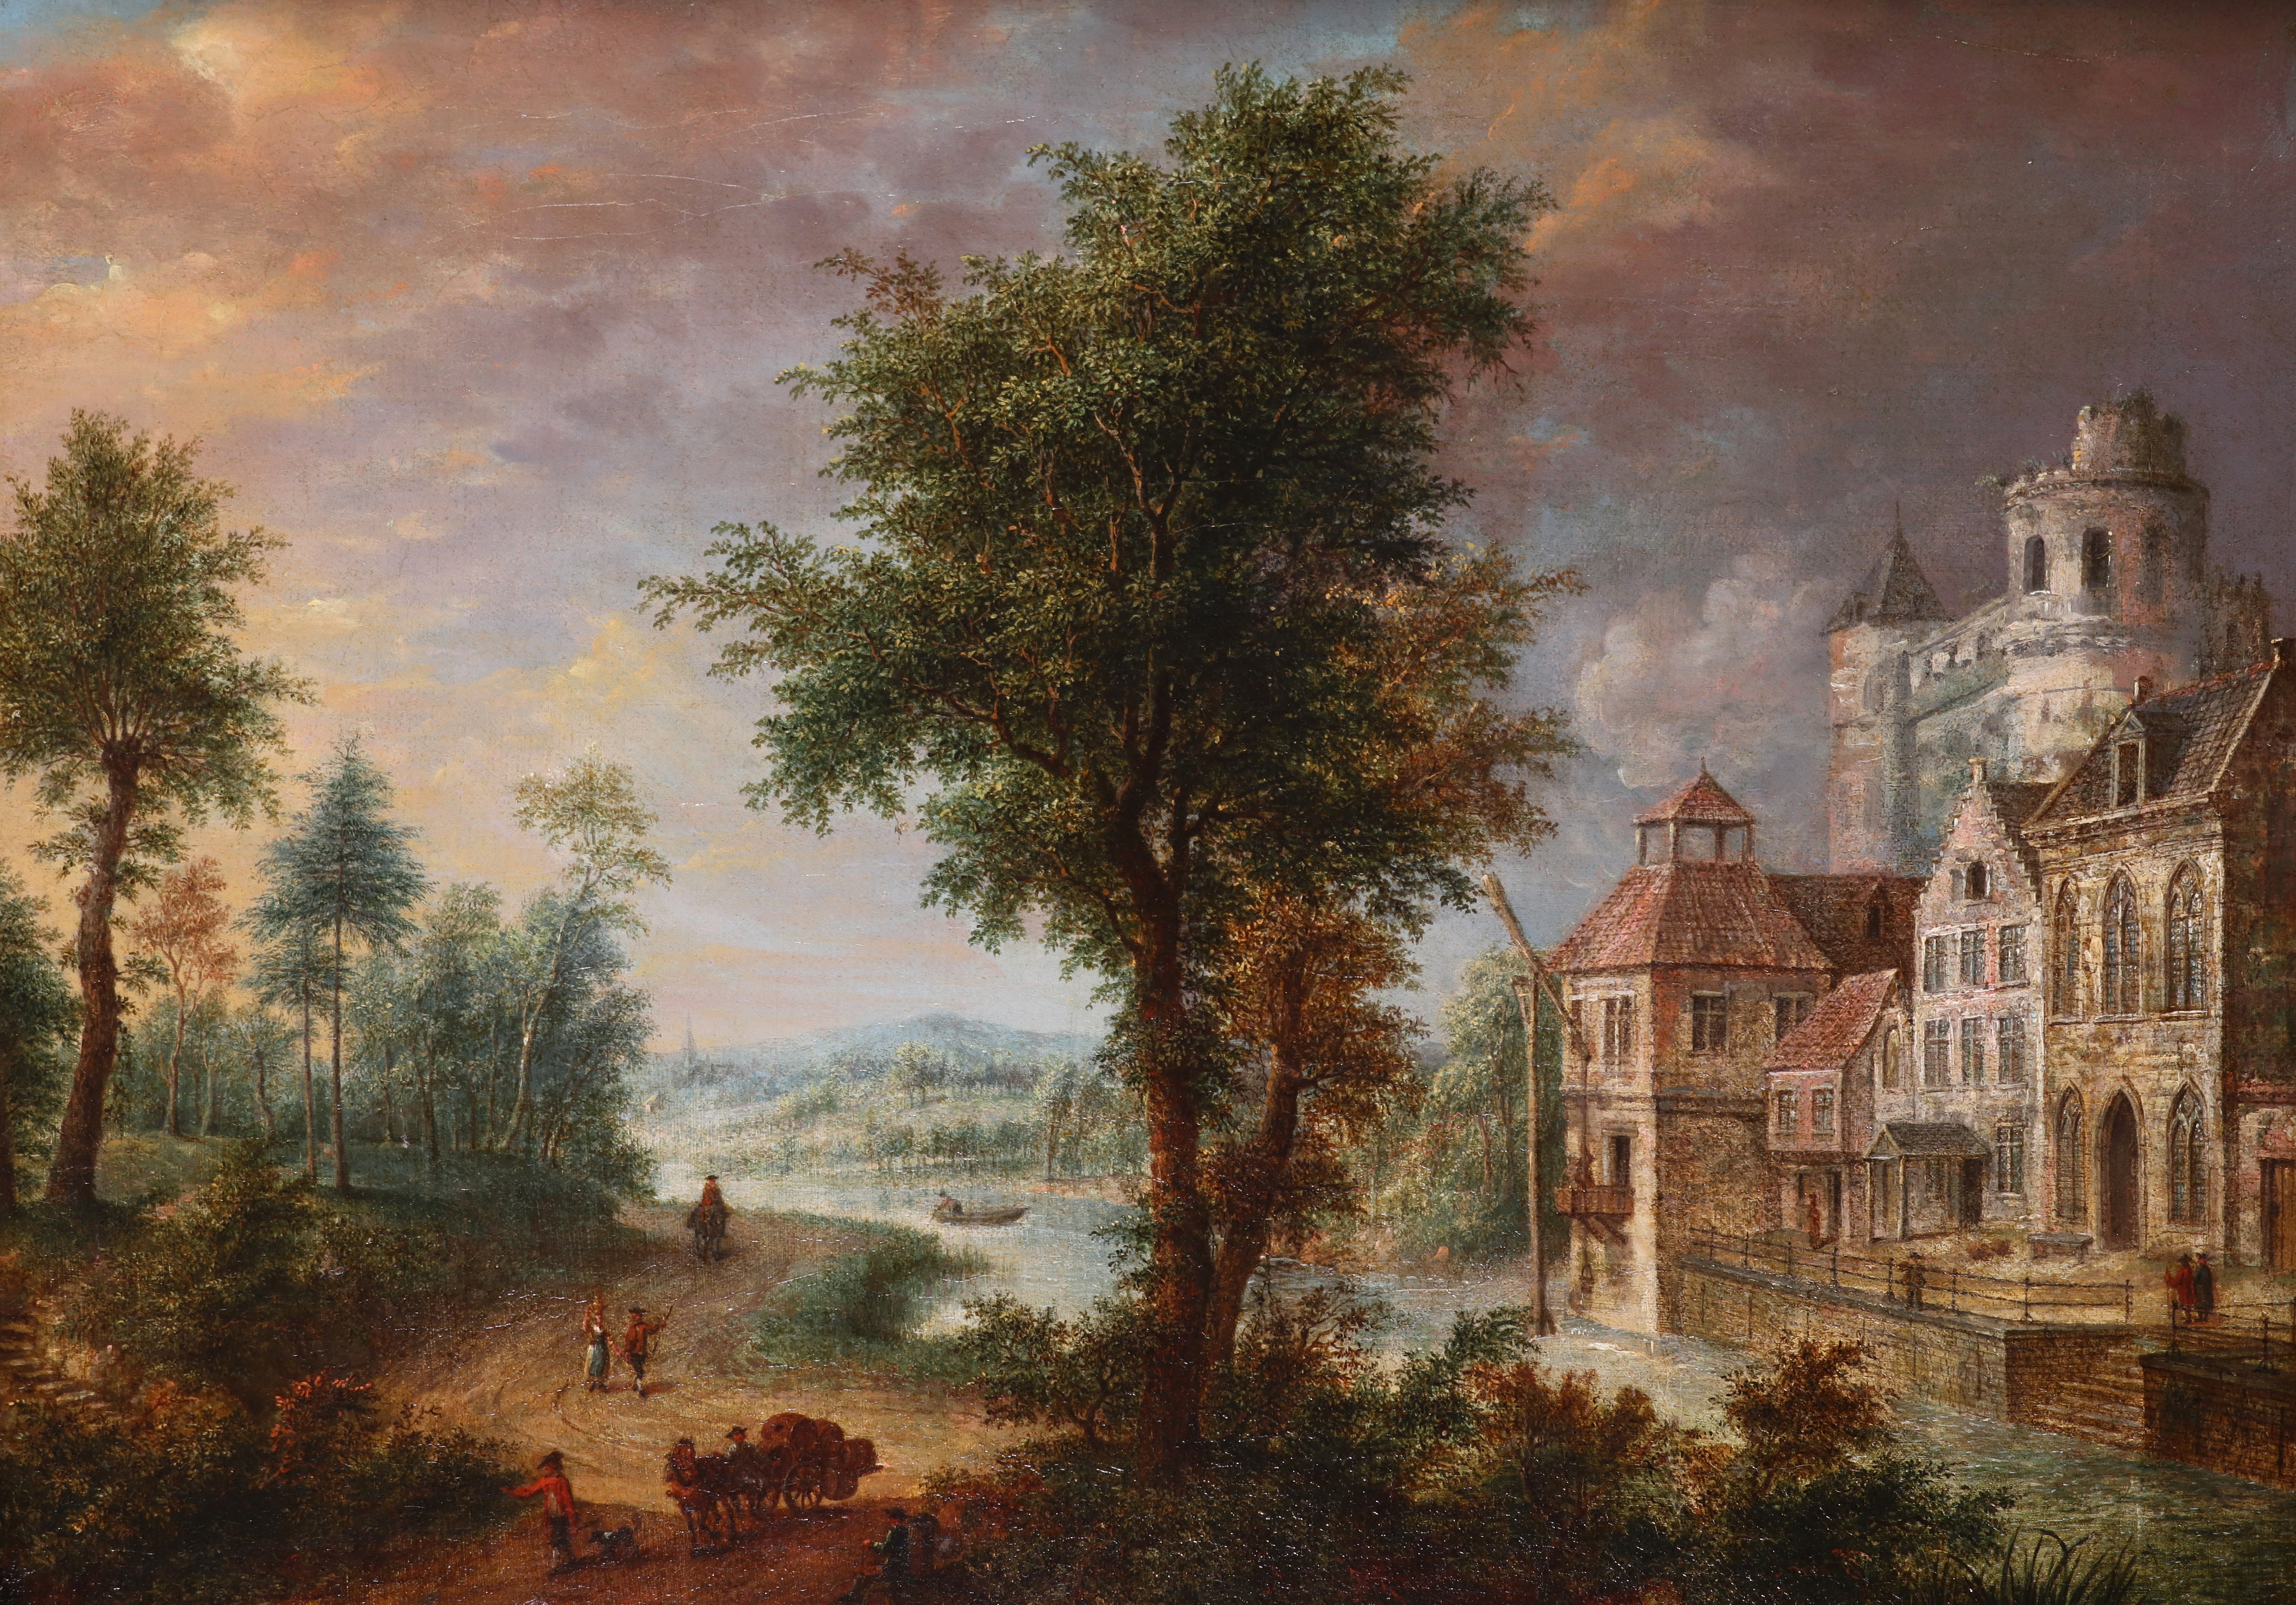 Auktion - Old Masters, British & European Paintings am 11 09 2018